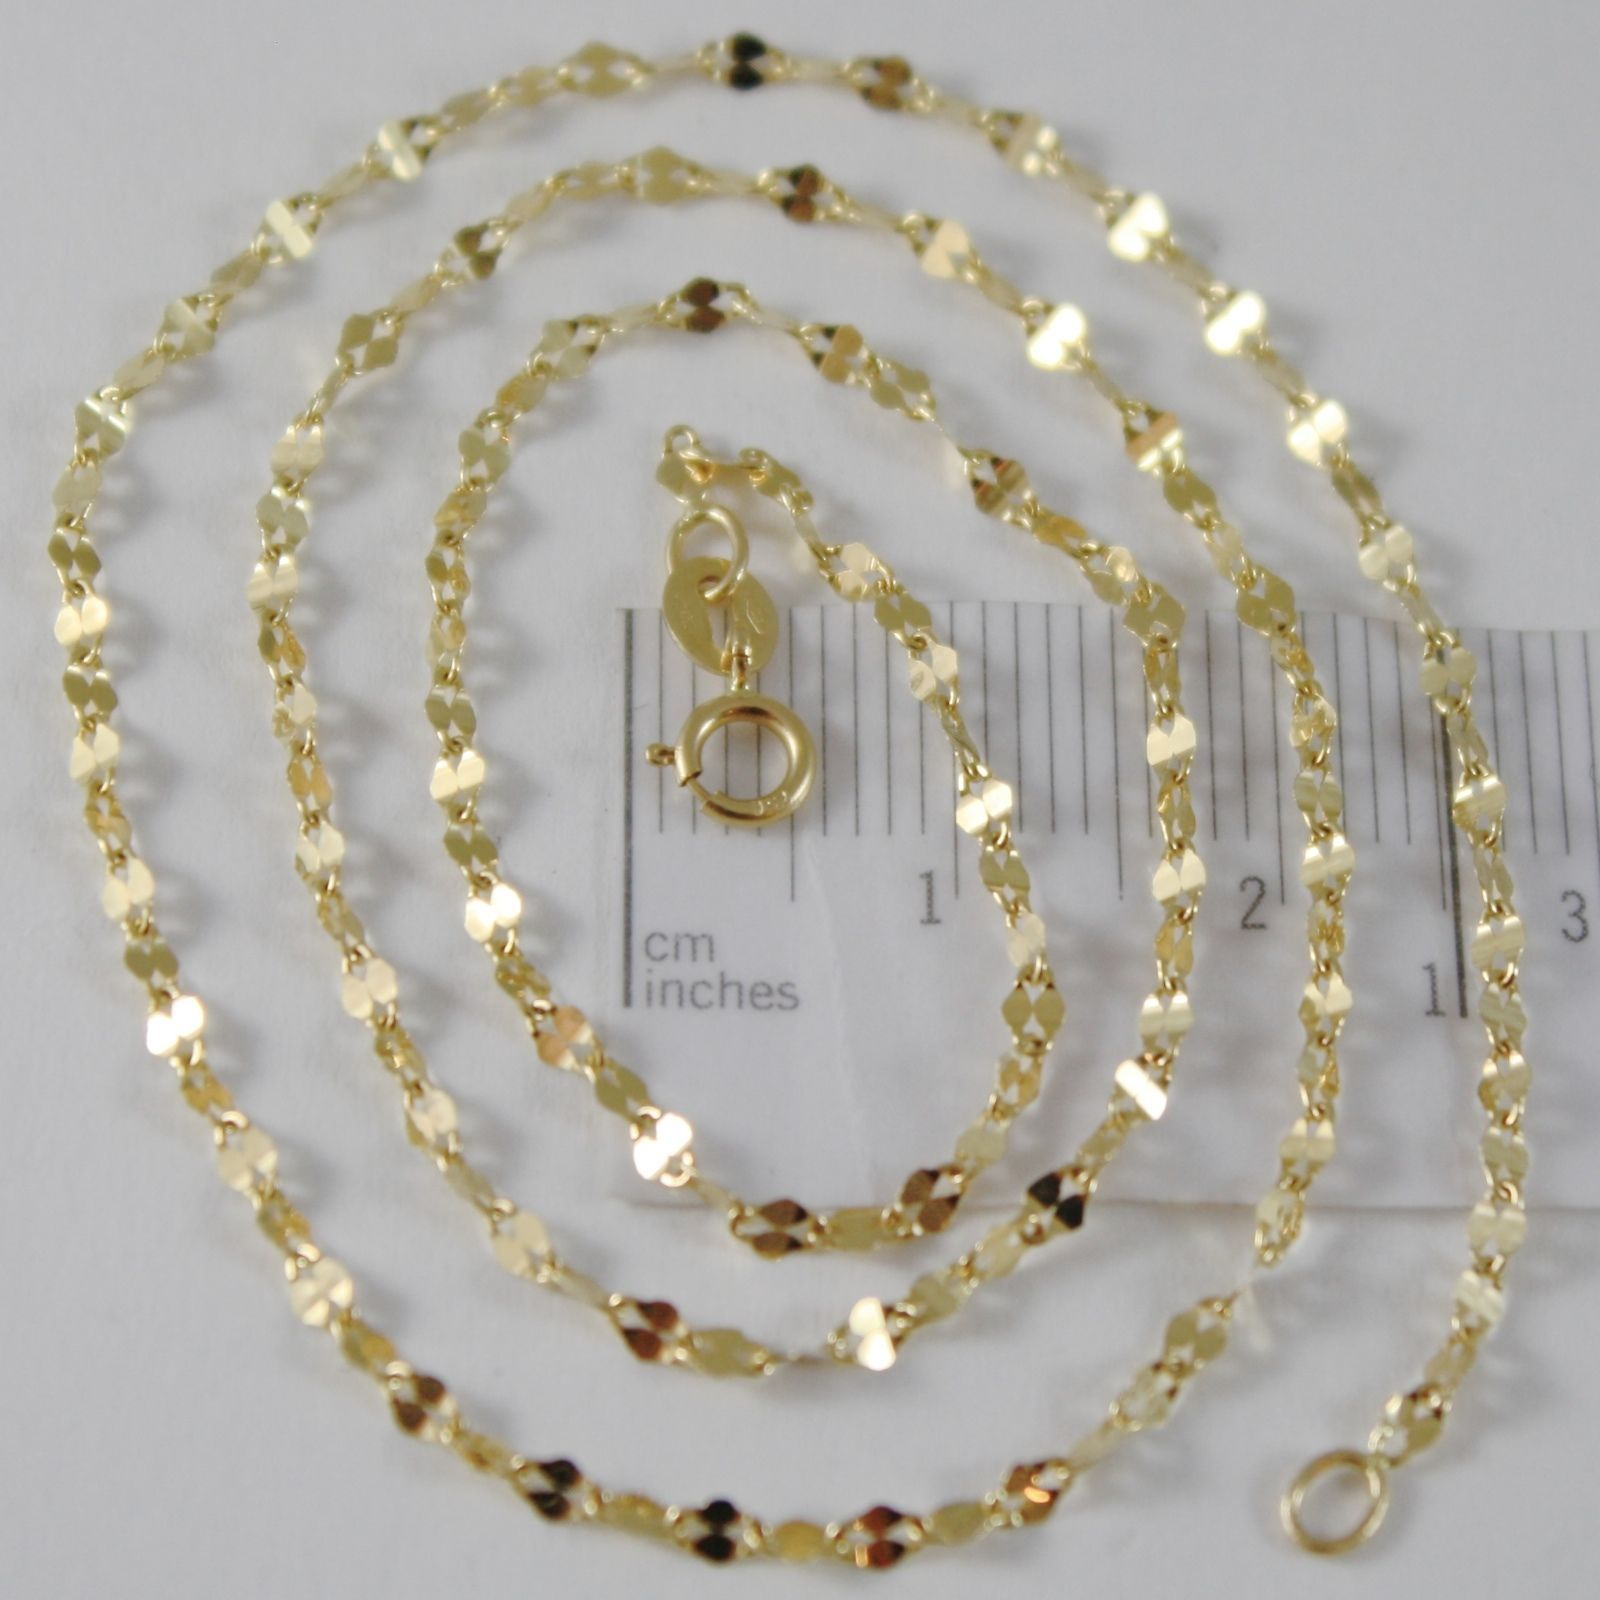 SOLID 18K YELLOW GOLD FLAT BRIGHT KITE CHAIN 18 INCHES, 2.2 MM MADE IN ITALY